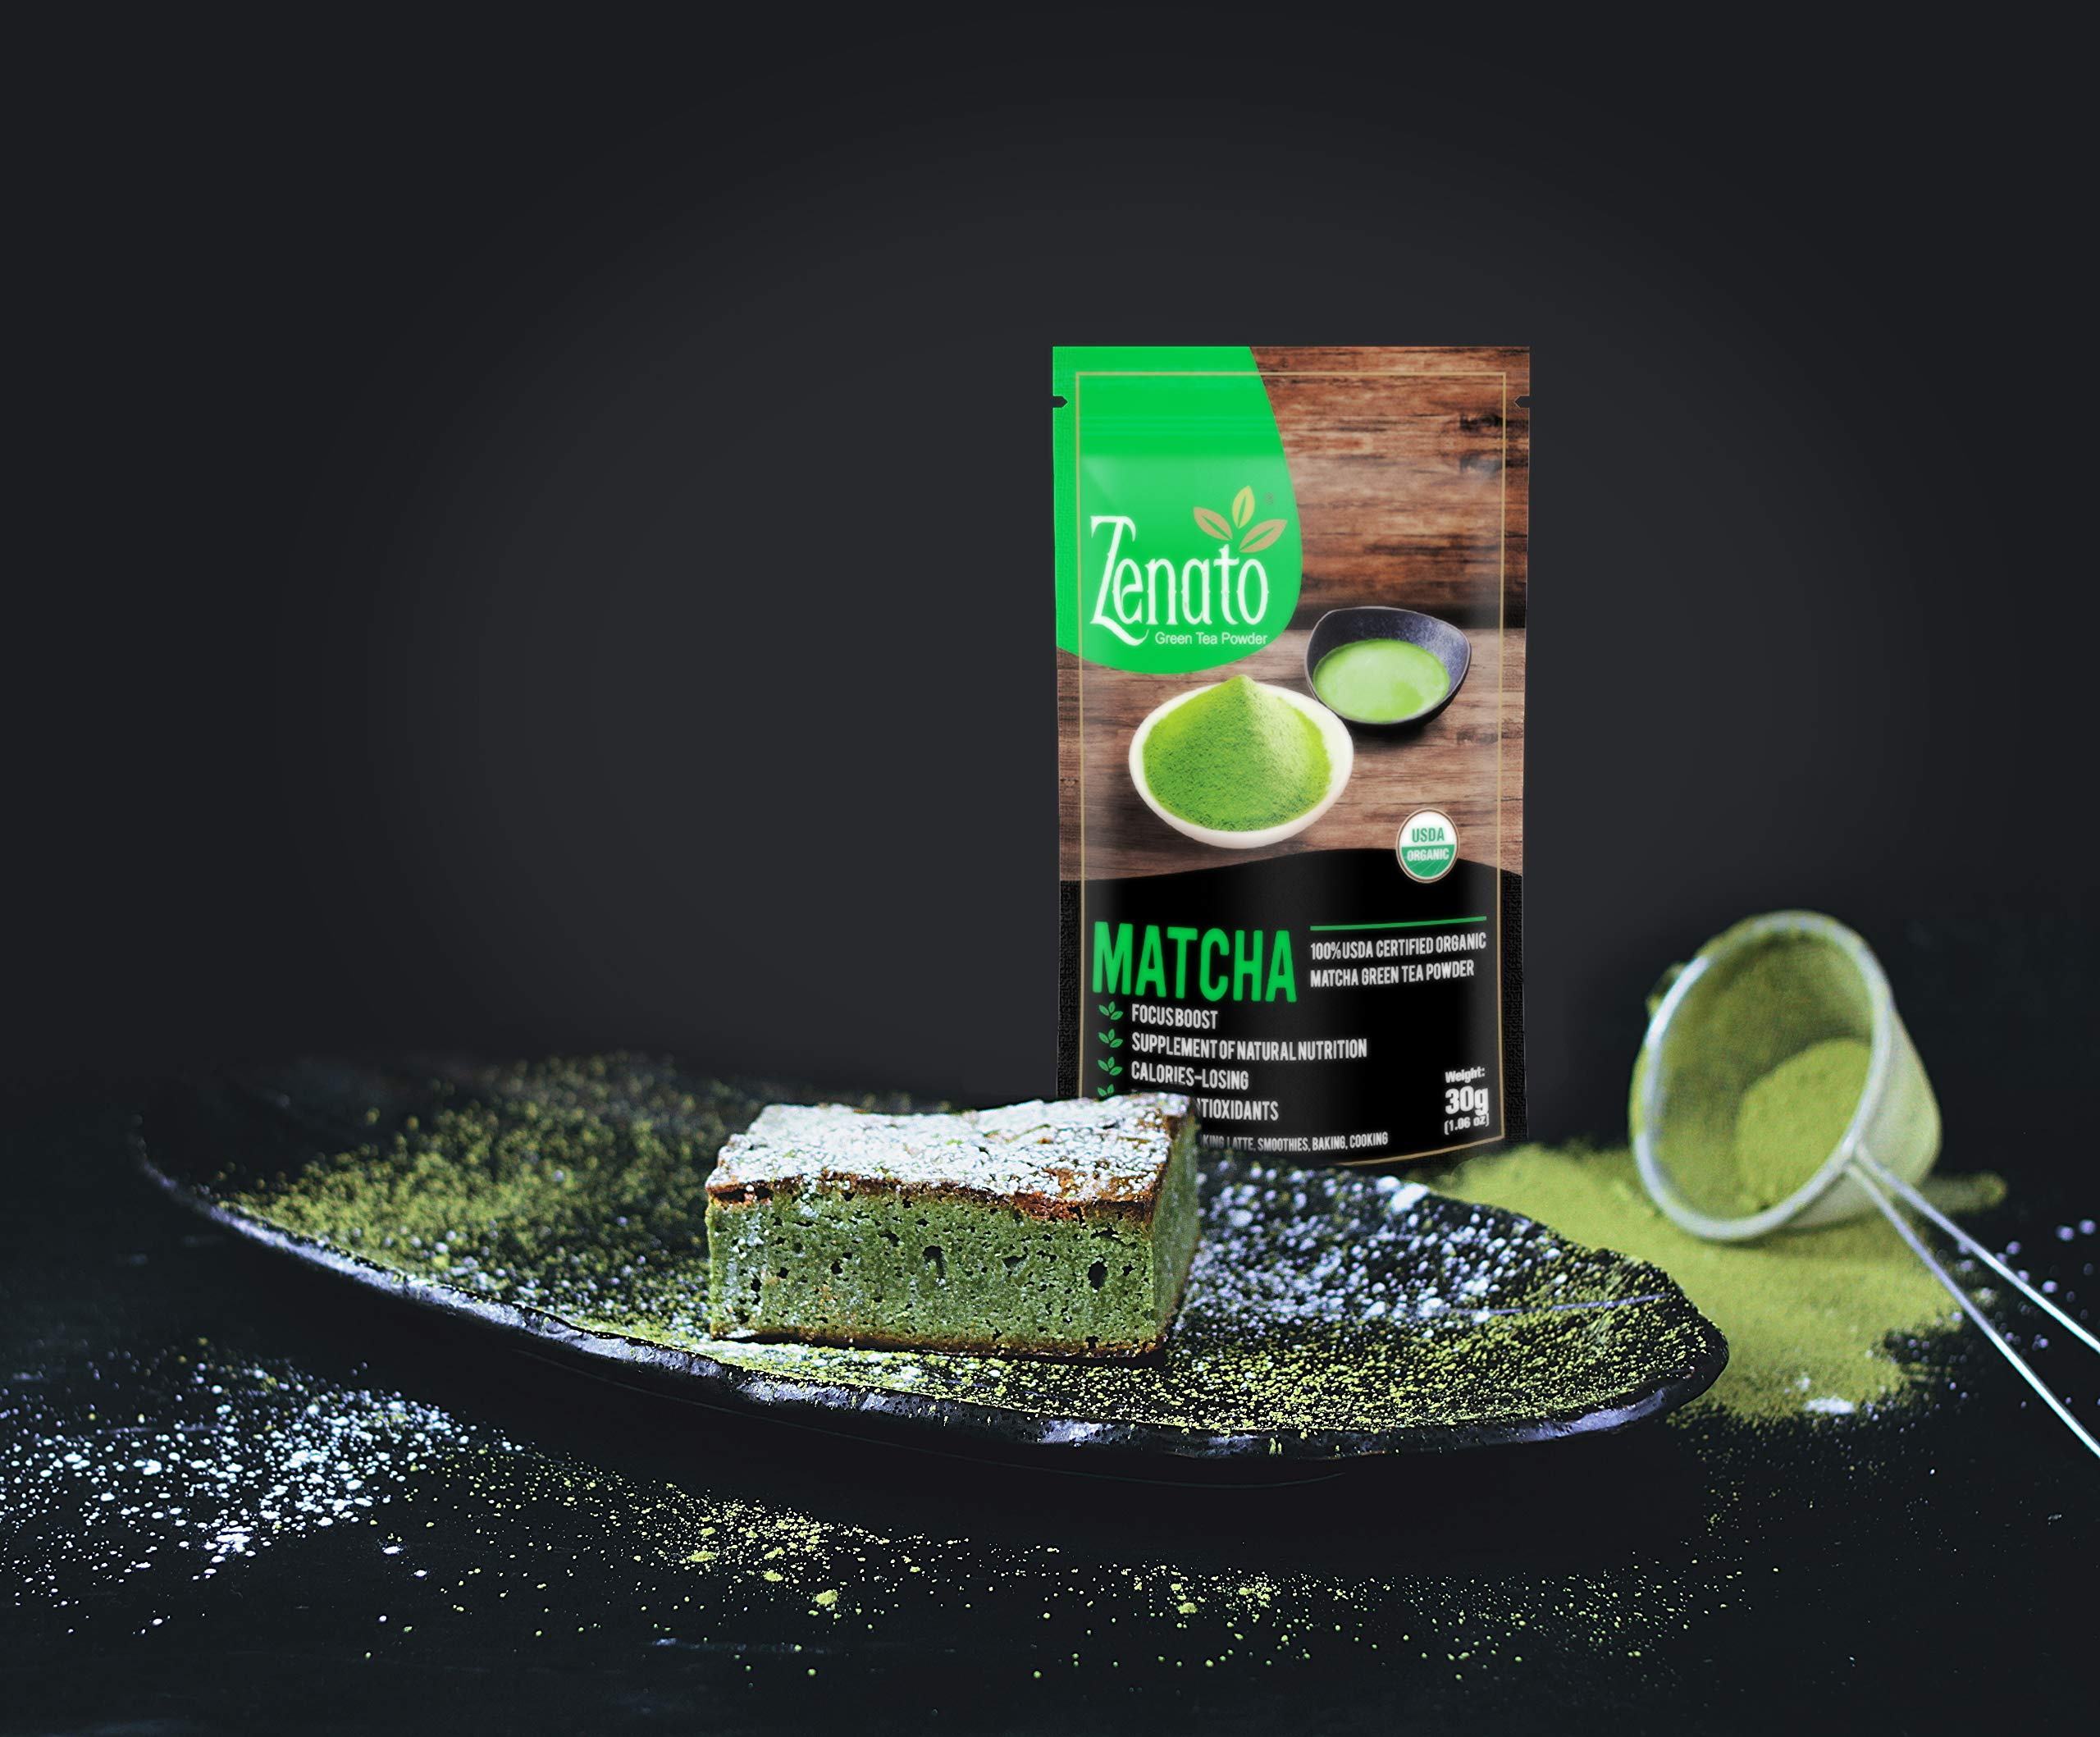 Zenato Matcha Green Tea Powder 15 Serving 30g (1.06 Oz), 100% USDA Organic, GMO Free, for Cooking, Latte, Baking, Ice Cream, Alternative for Coffee by Zenato